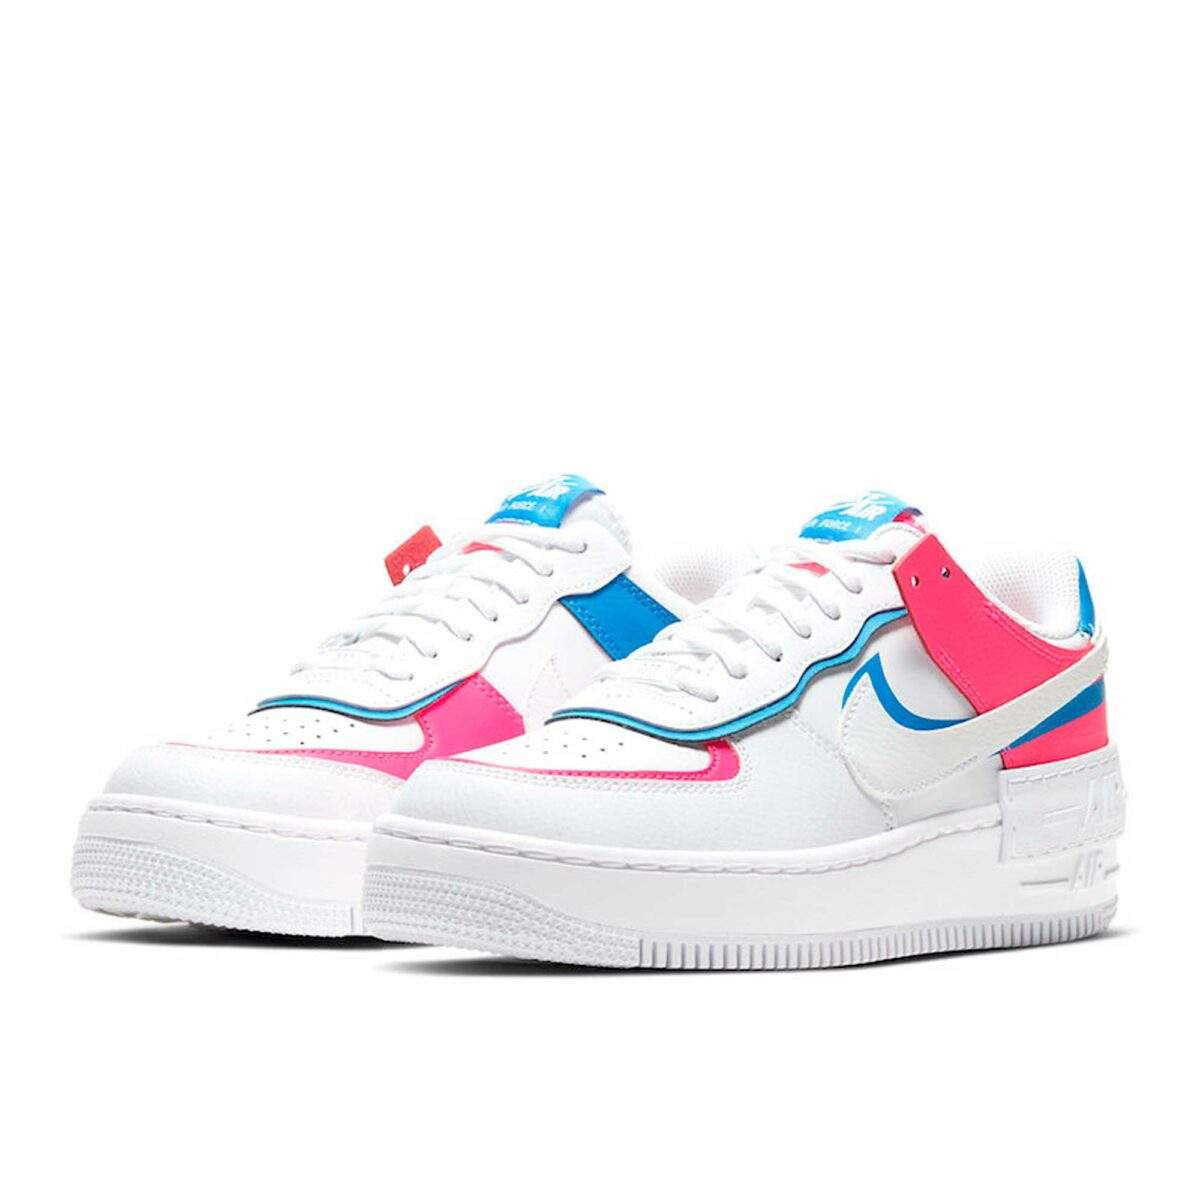 nike air force 1 shadow pink blue CU3012_111 купить